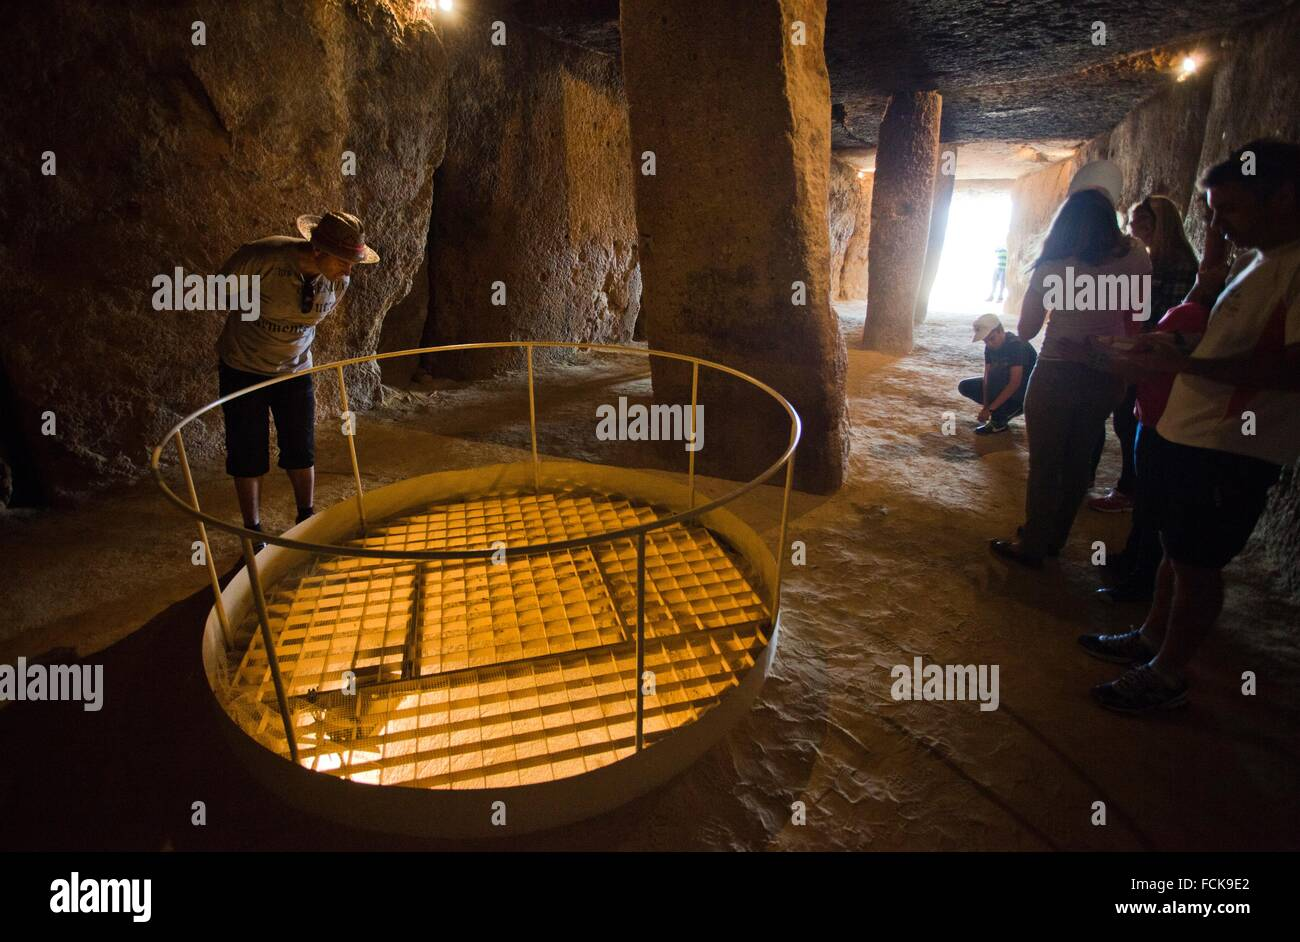 Well inside, Dolmen of Menga, Menga megalithic dolmen, 3rd millennium BCE, Antequera, Málaga province, Andalusia, - Stock Image